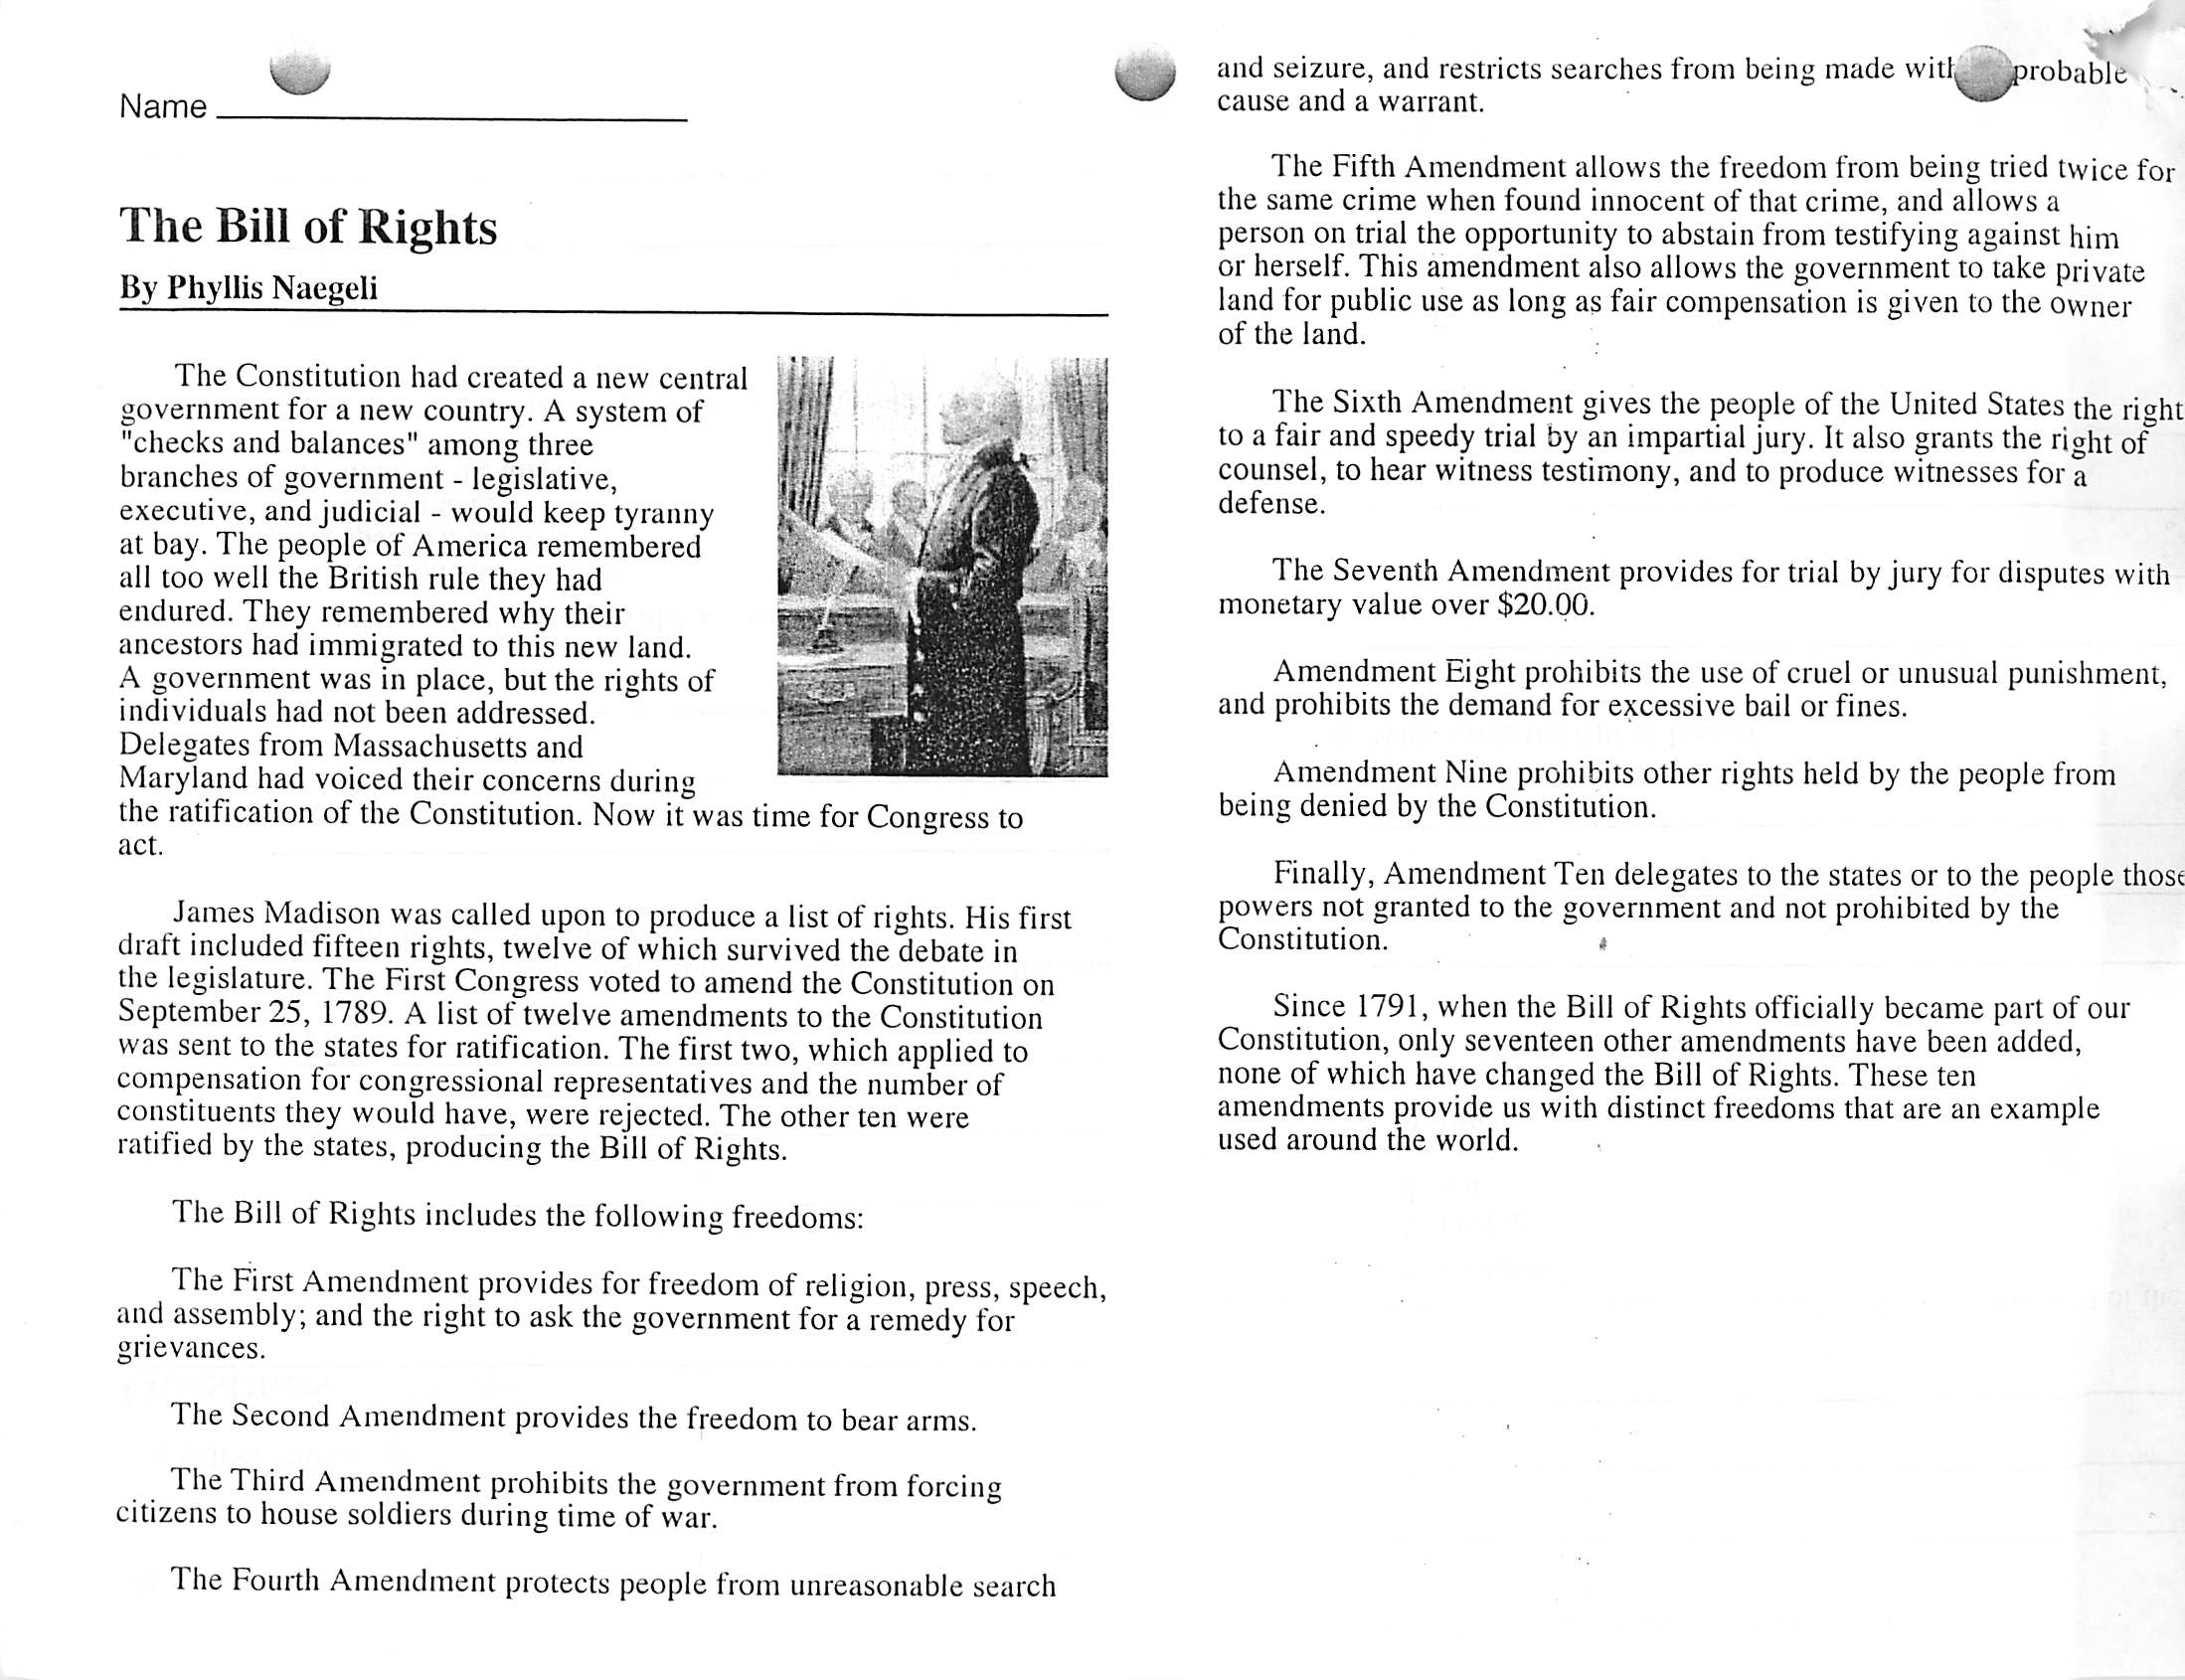 essay about the bill of rights get a custom high quality essay here